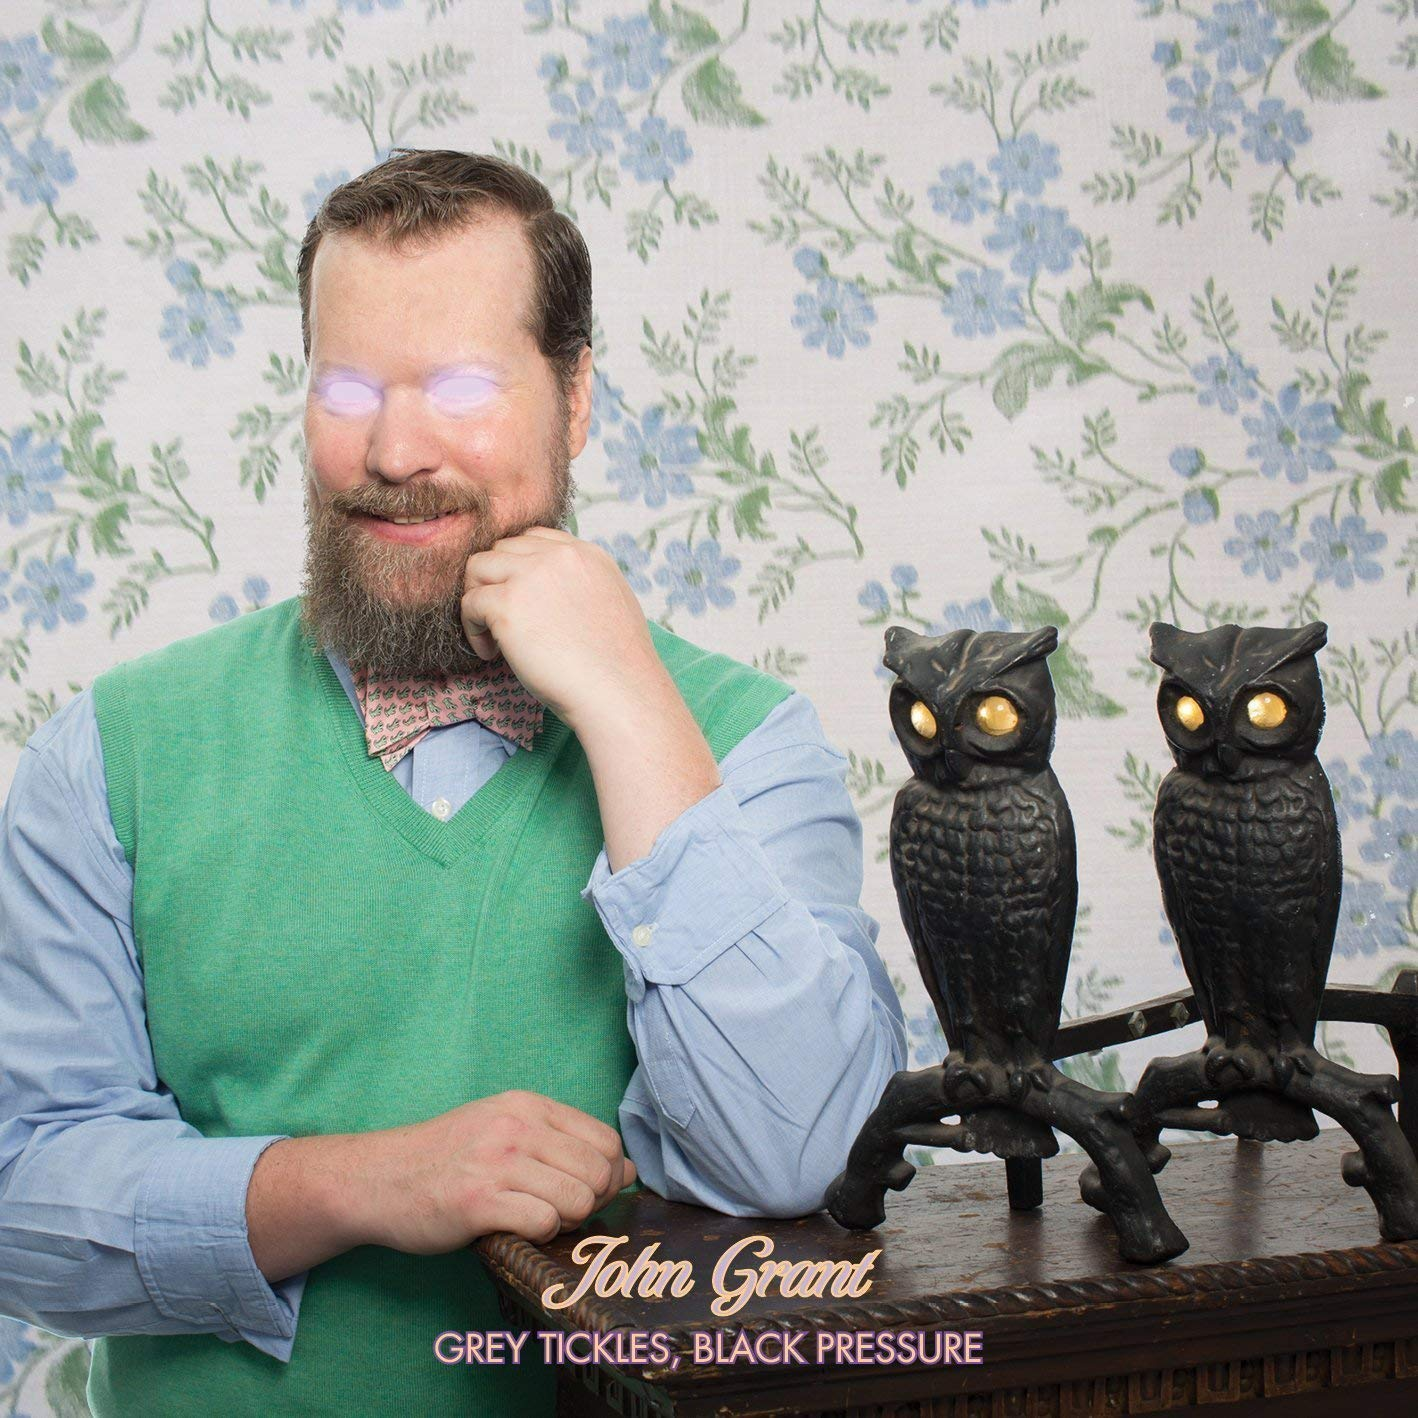 Джон Грант John Grant. Grey Tickles, Black Pressure (2 LP)